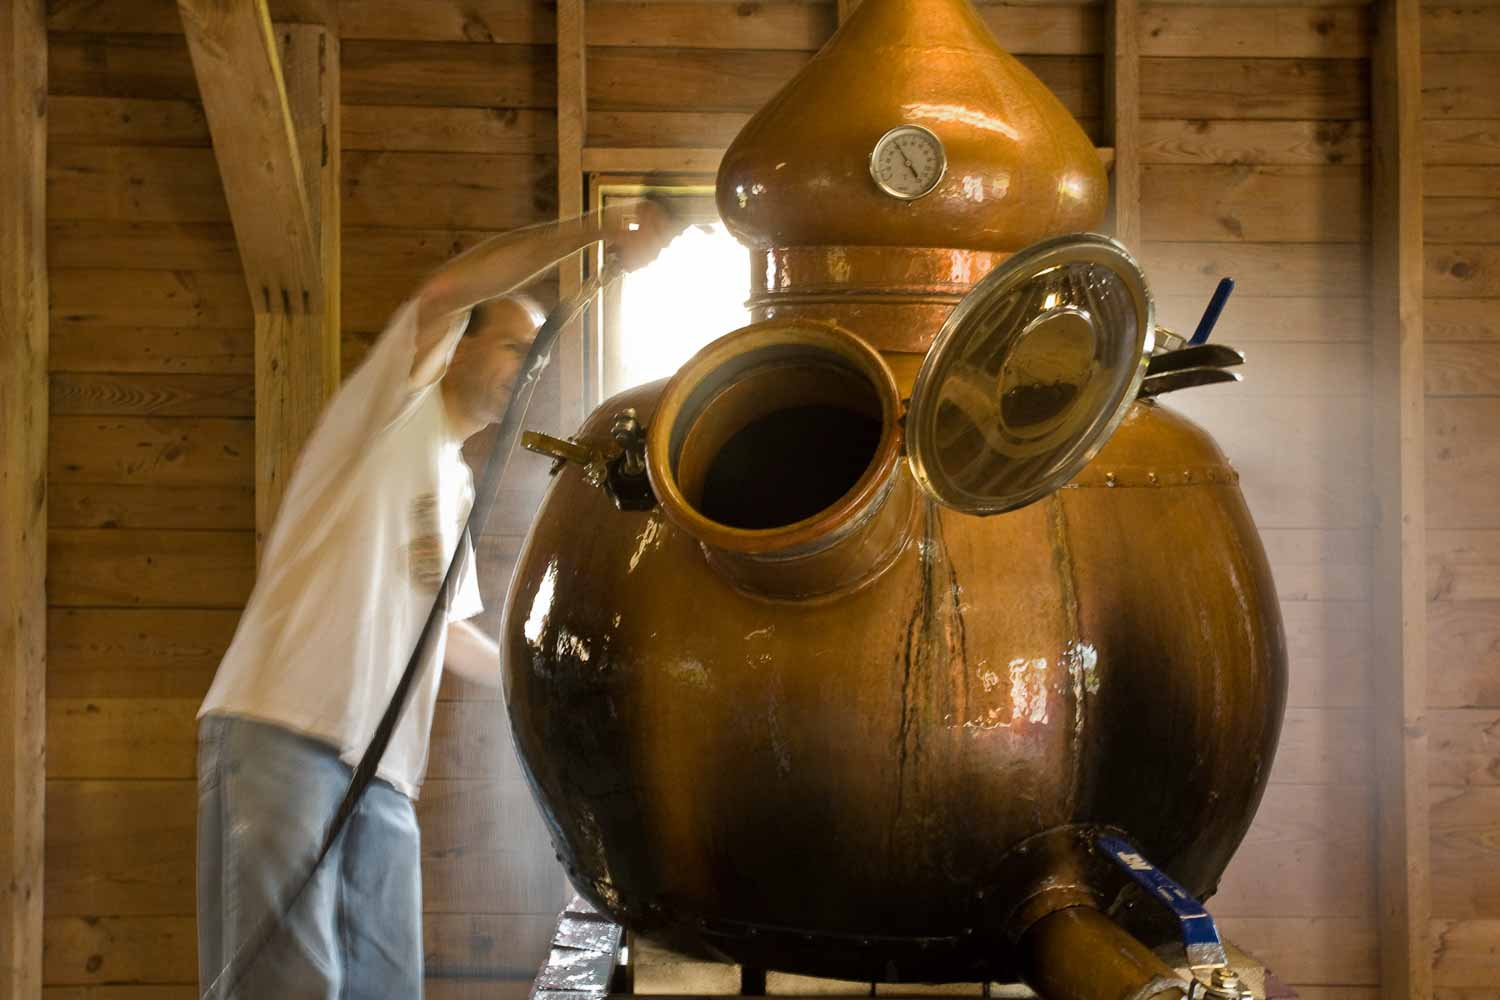 Keith Bodine, of Sweetgrass Winery and Distillery, cleaning his pot still.